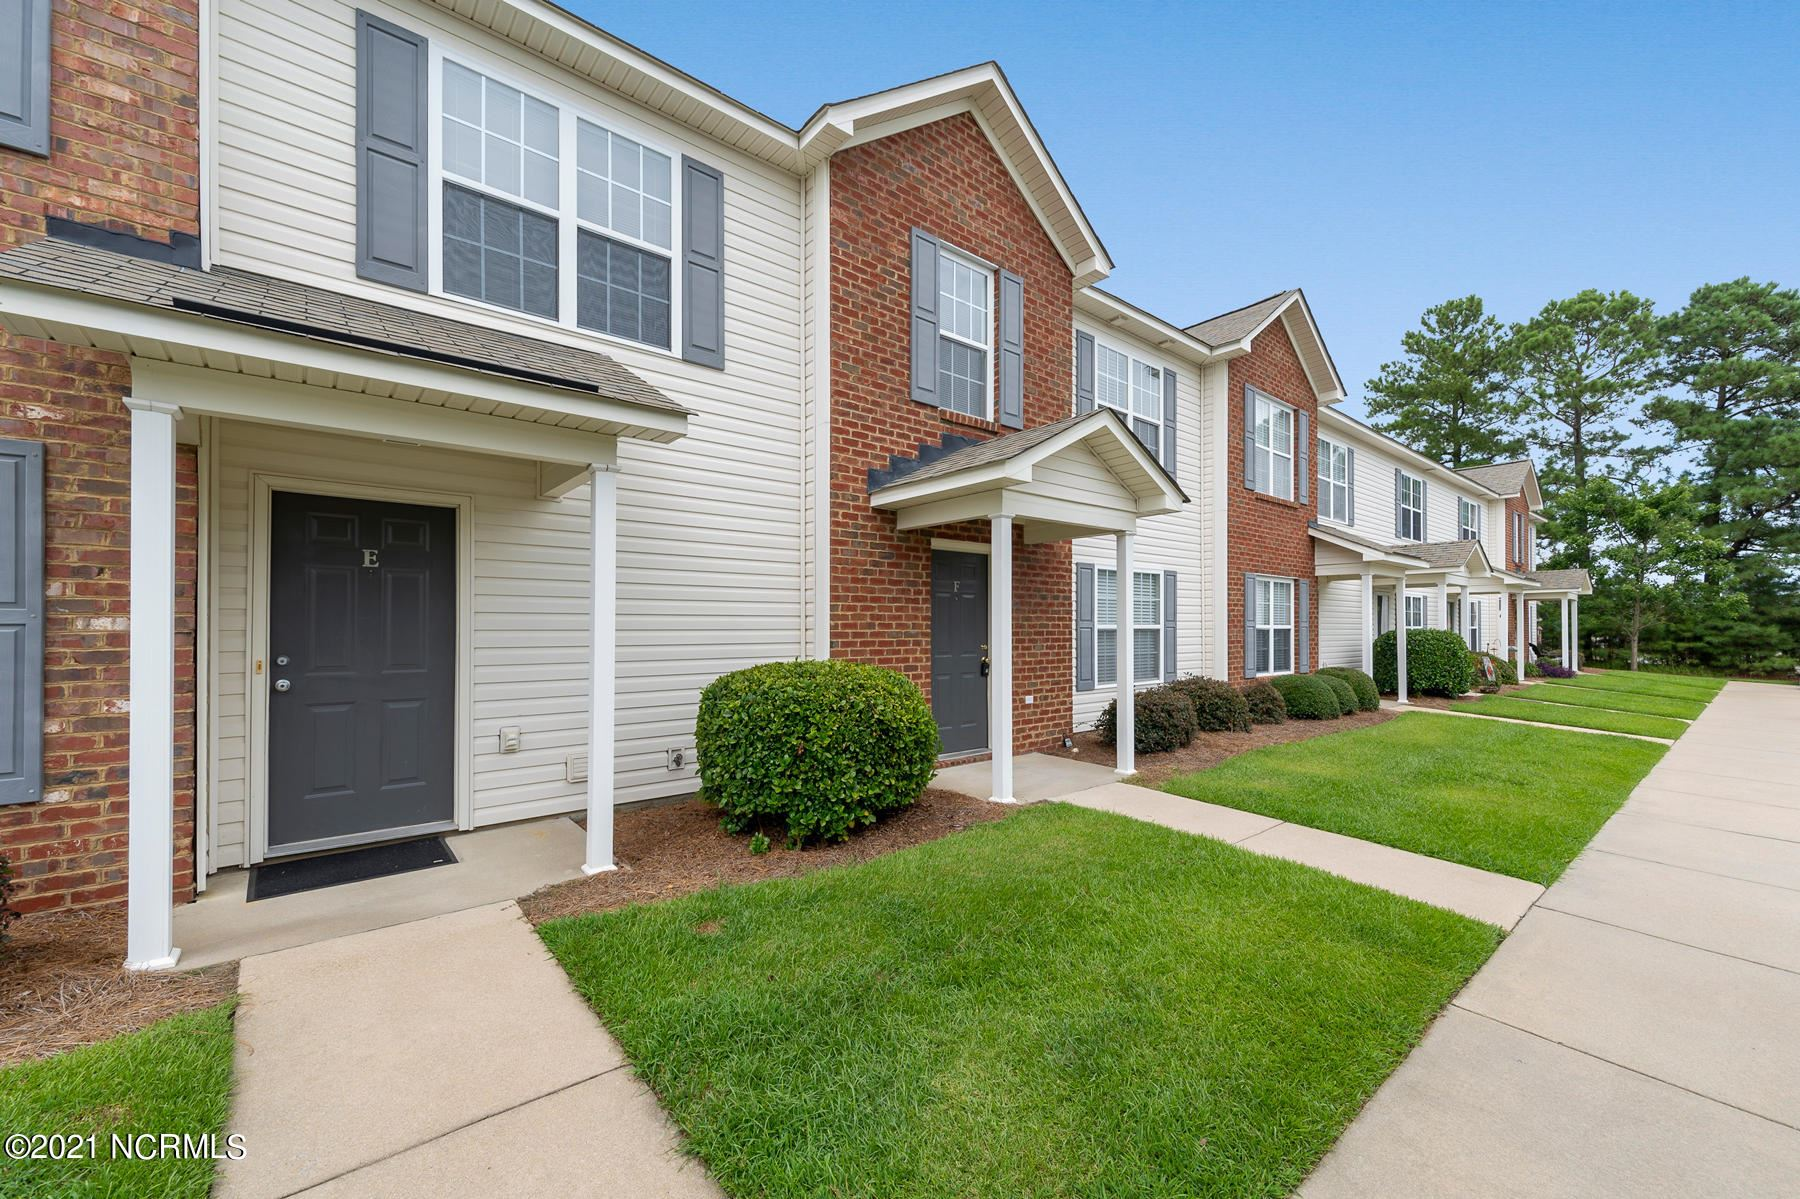 Photo of 4165 Dudleys Grant Drive #F, Winterville, NC 28590 (MLS # 100287349)